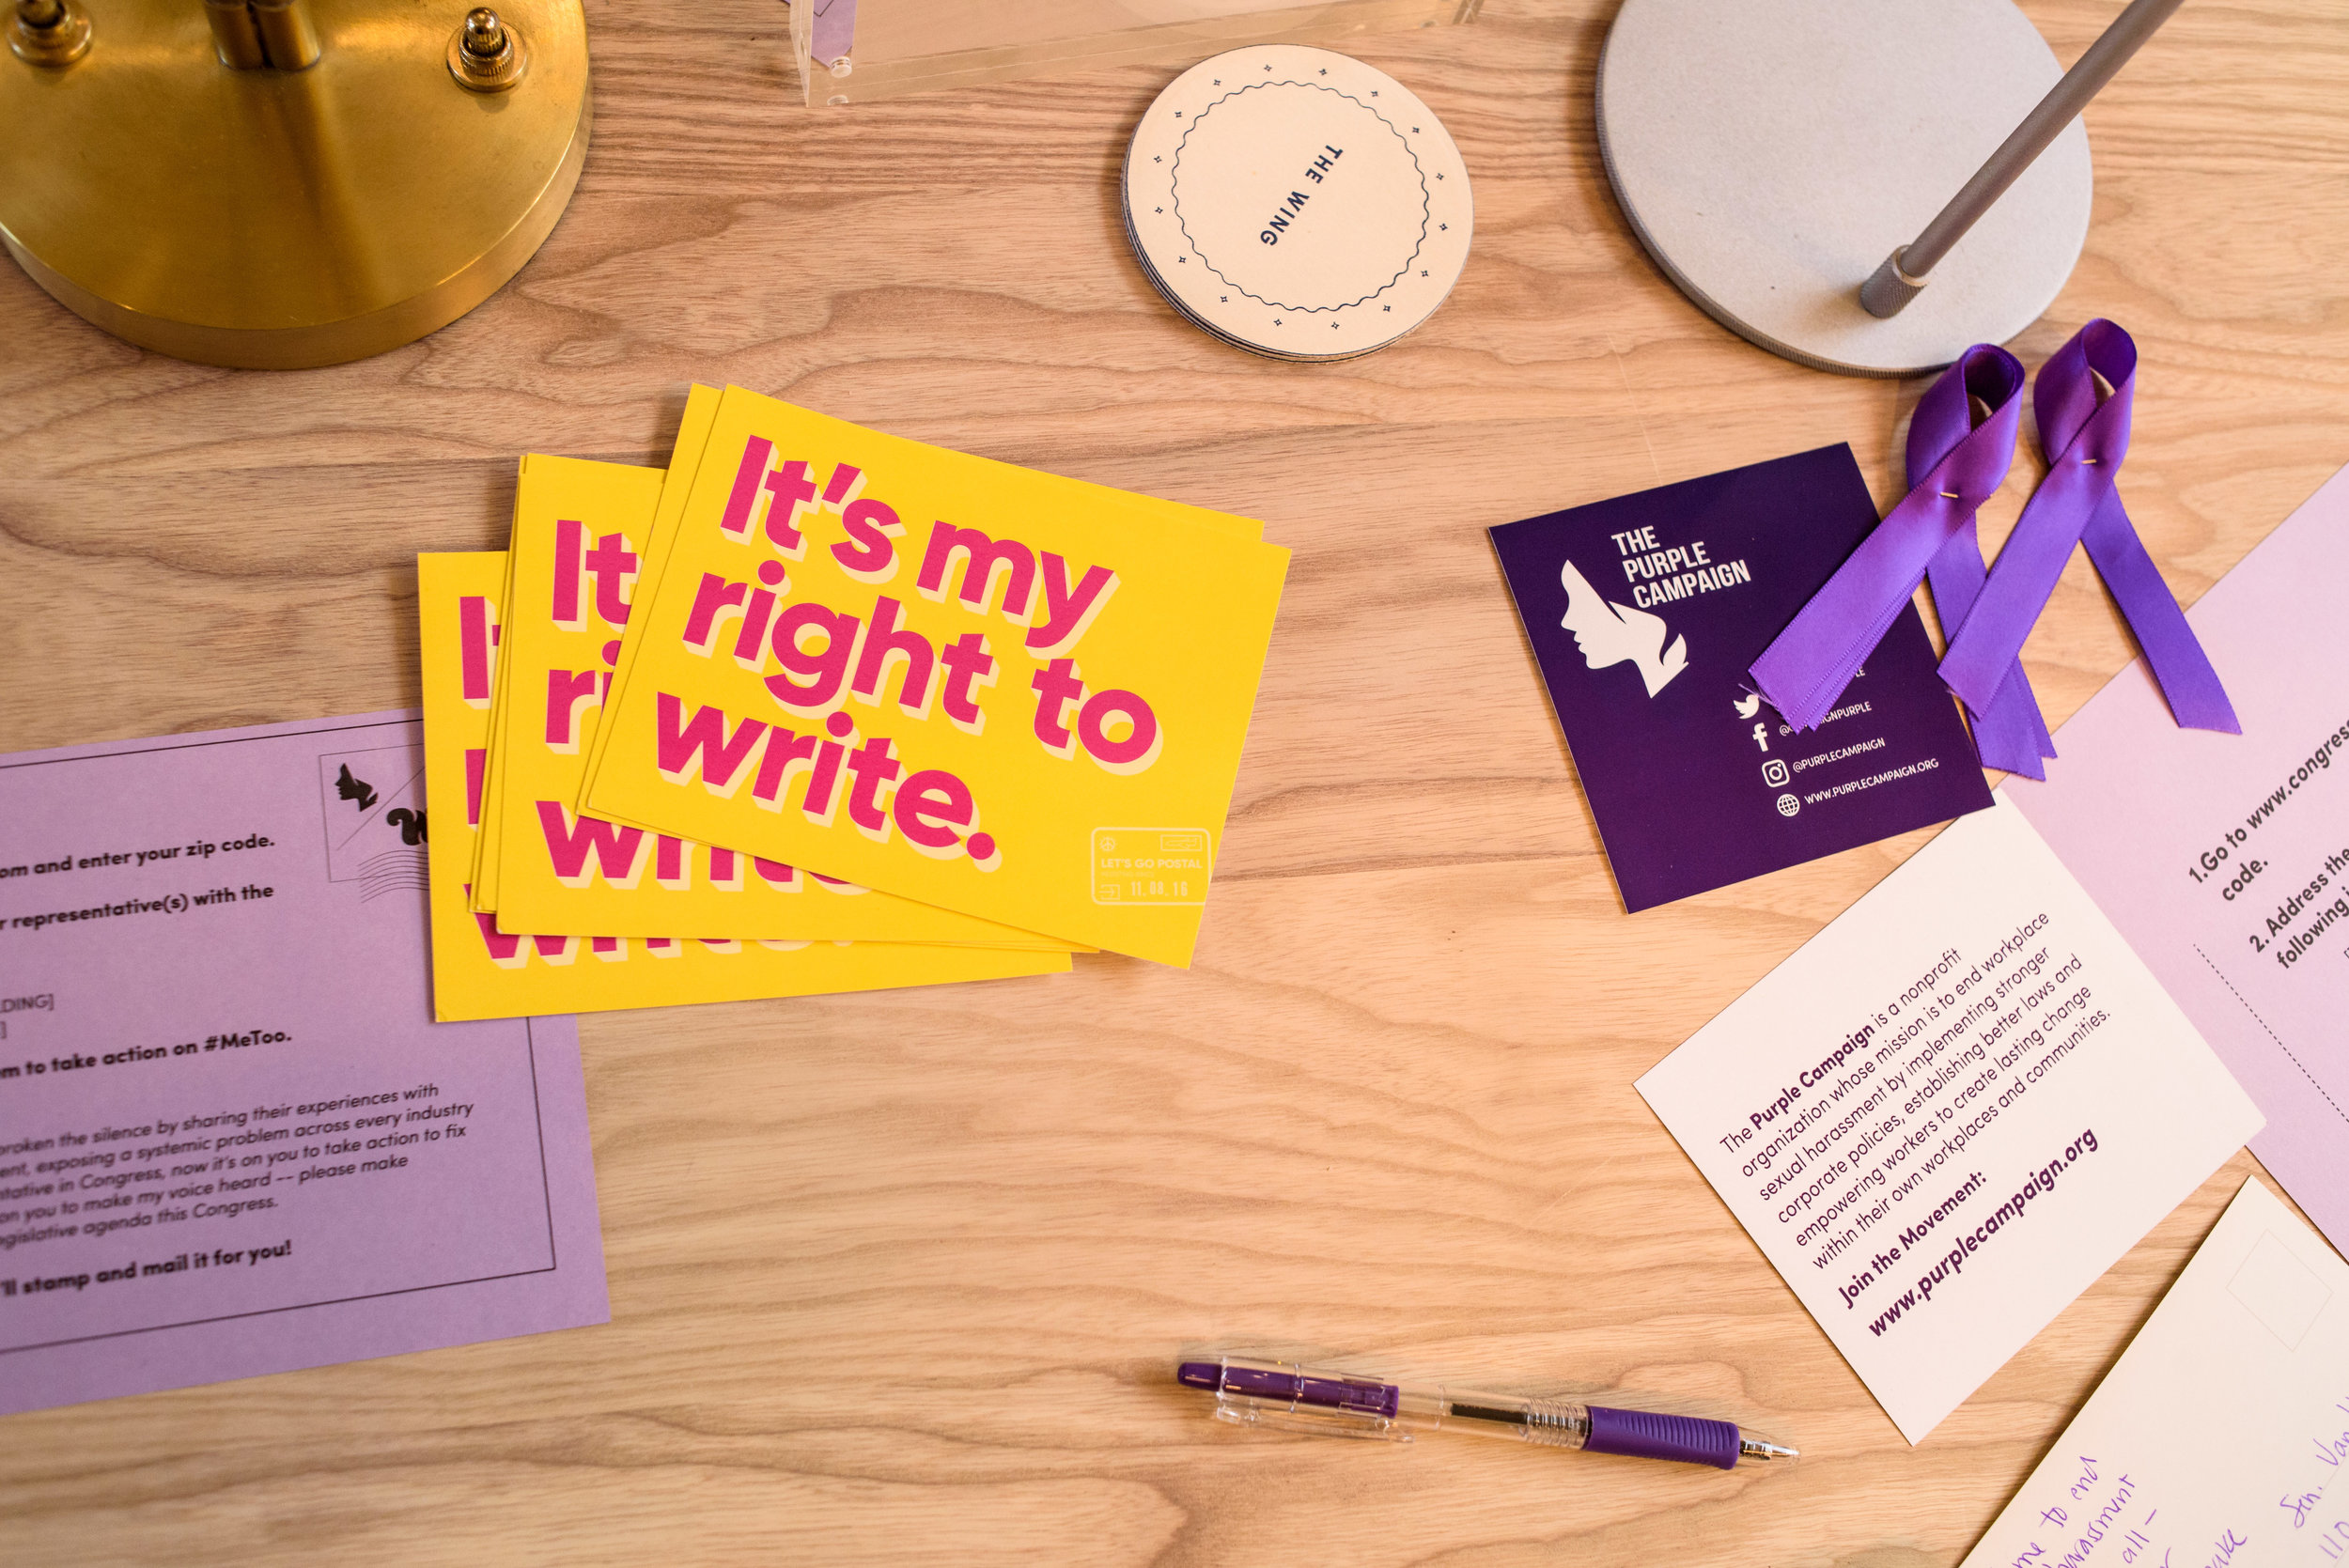 Purple_Campaign_Event_at_The_Wing_03.JPG